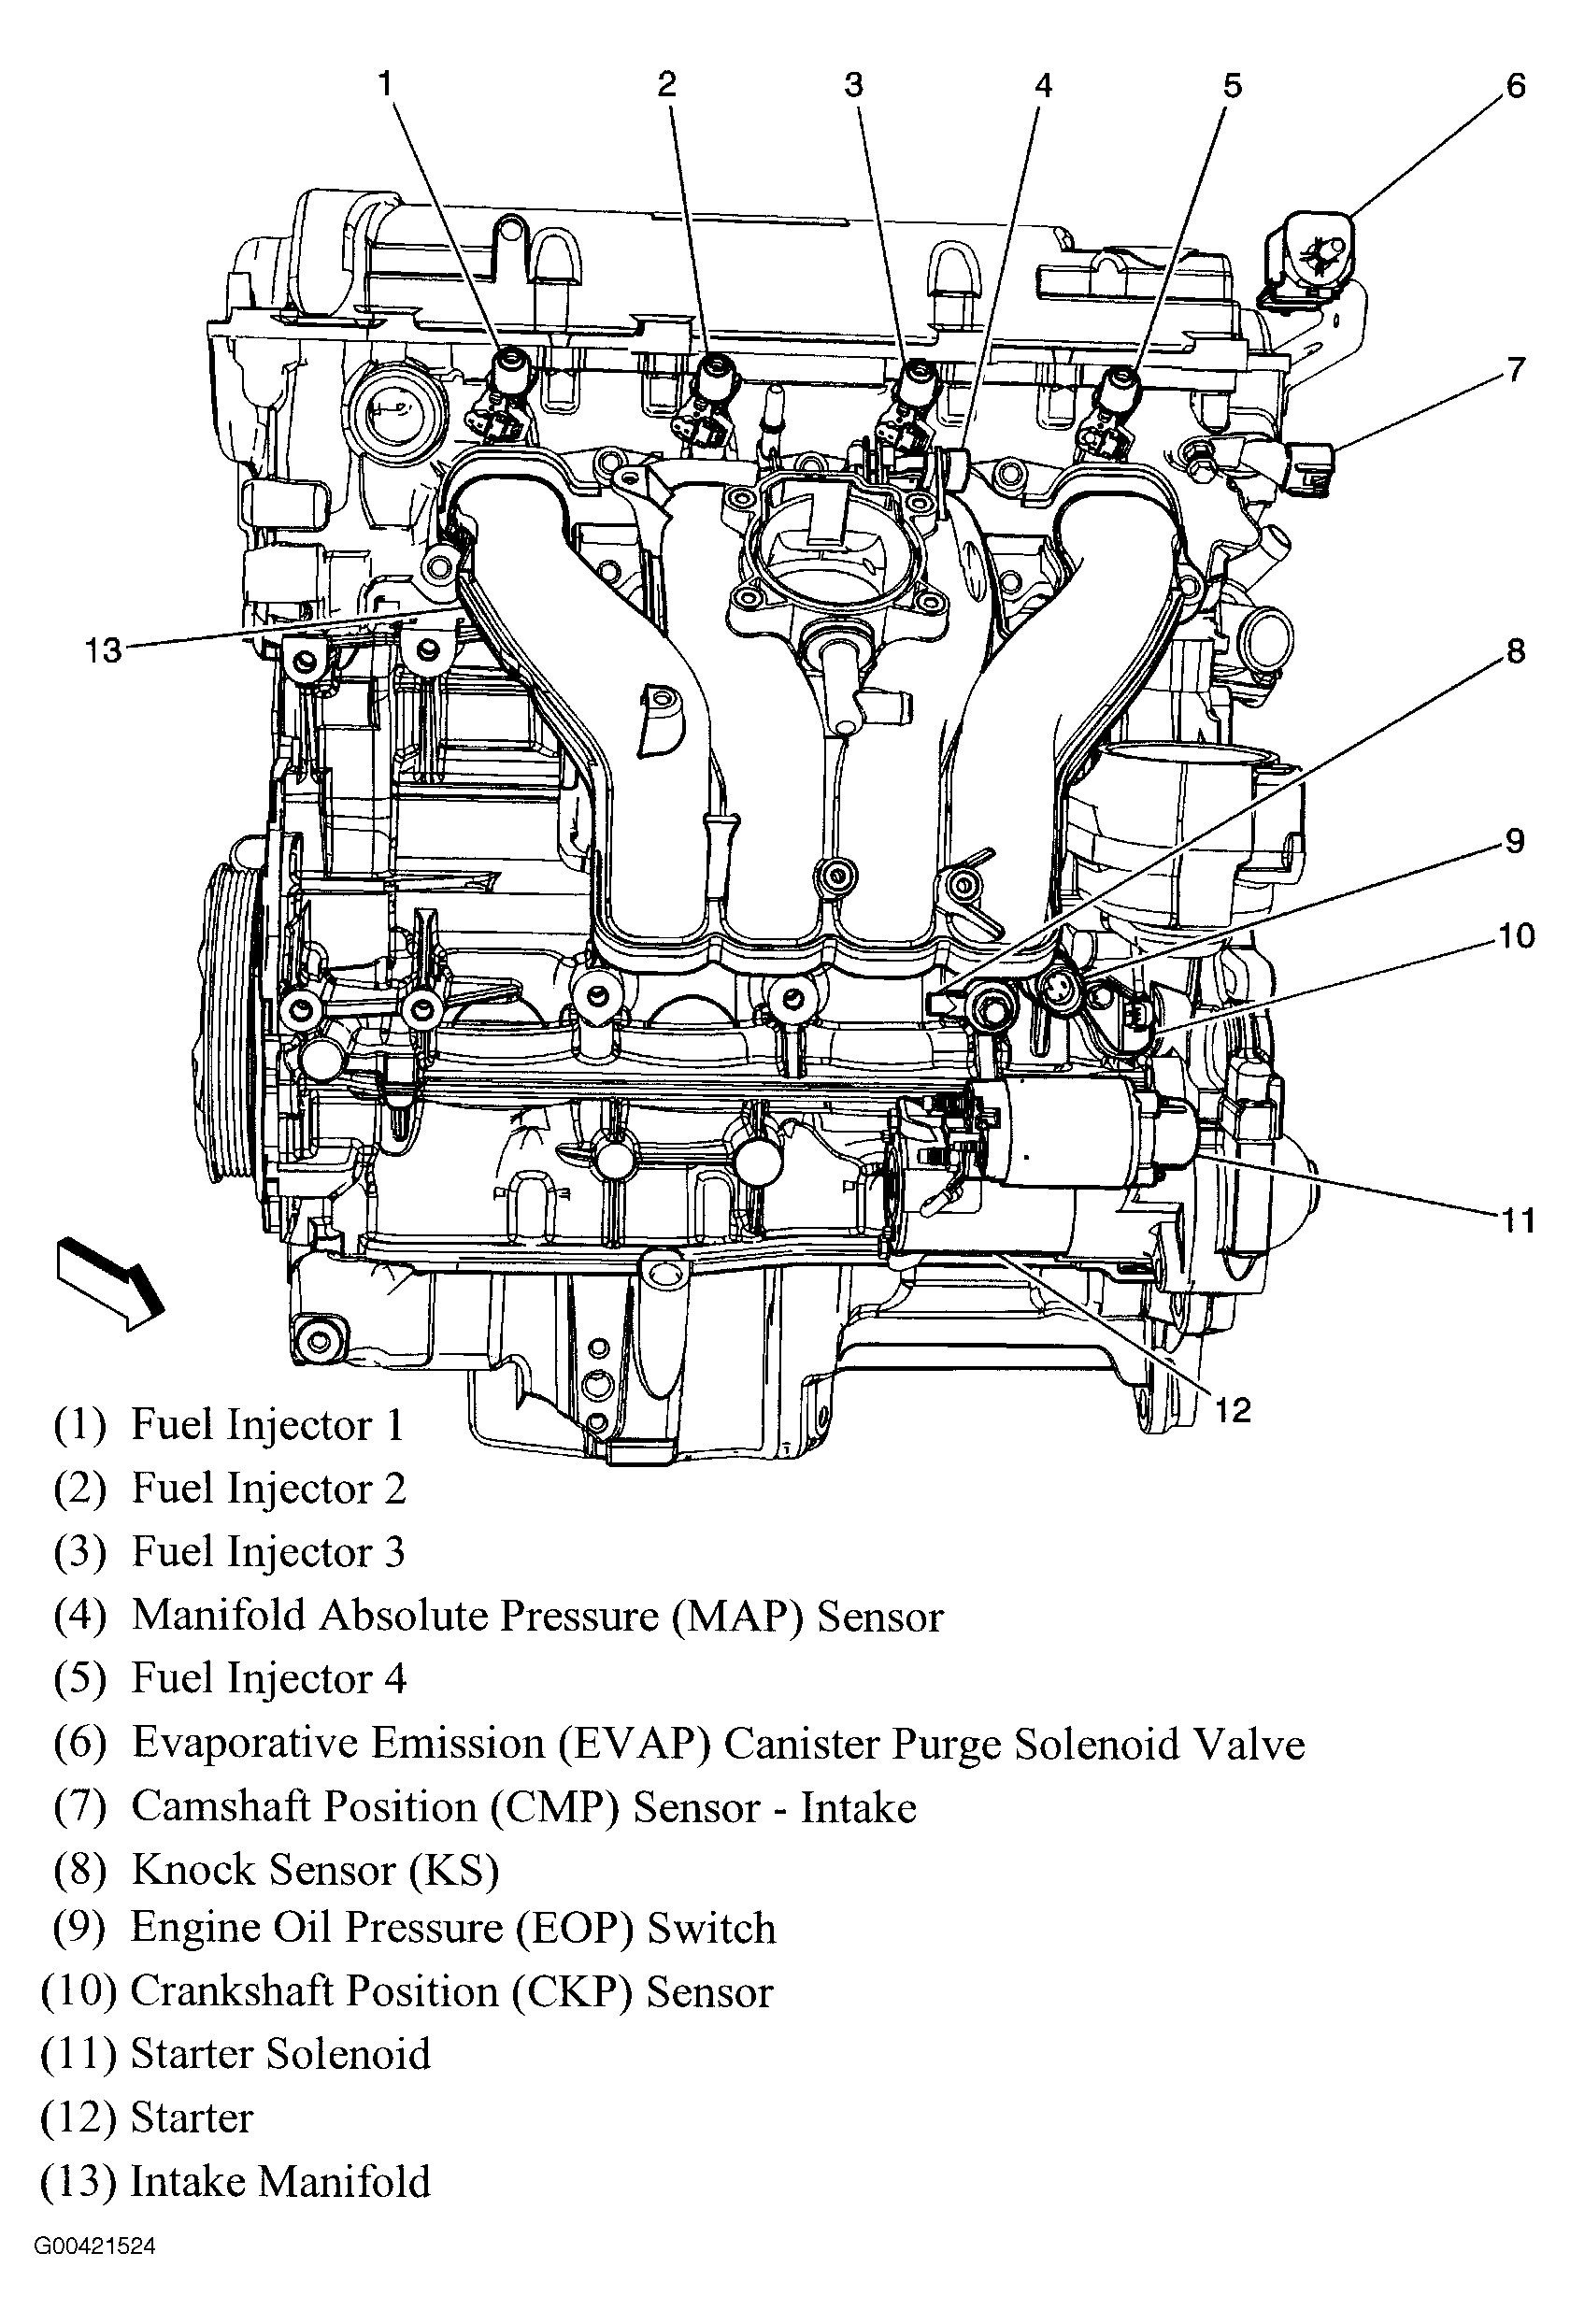 4 2 liter chevy engine diagram 3 14 stefvandenheuvel nl u2022 rh 3 14 stefvandenheuvel nl Dodge 5.7 Hemi Specifications Ford 7.5 Liter Engine